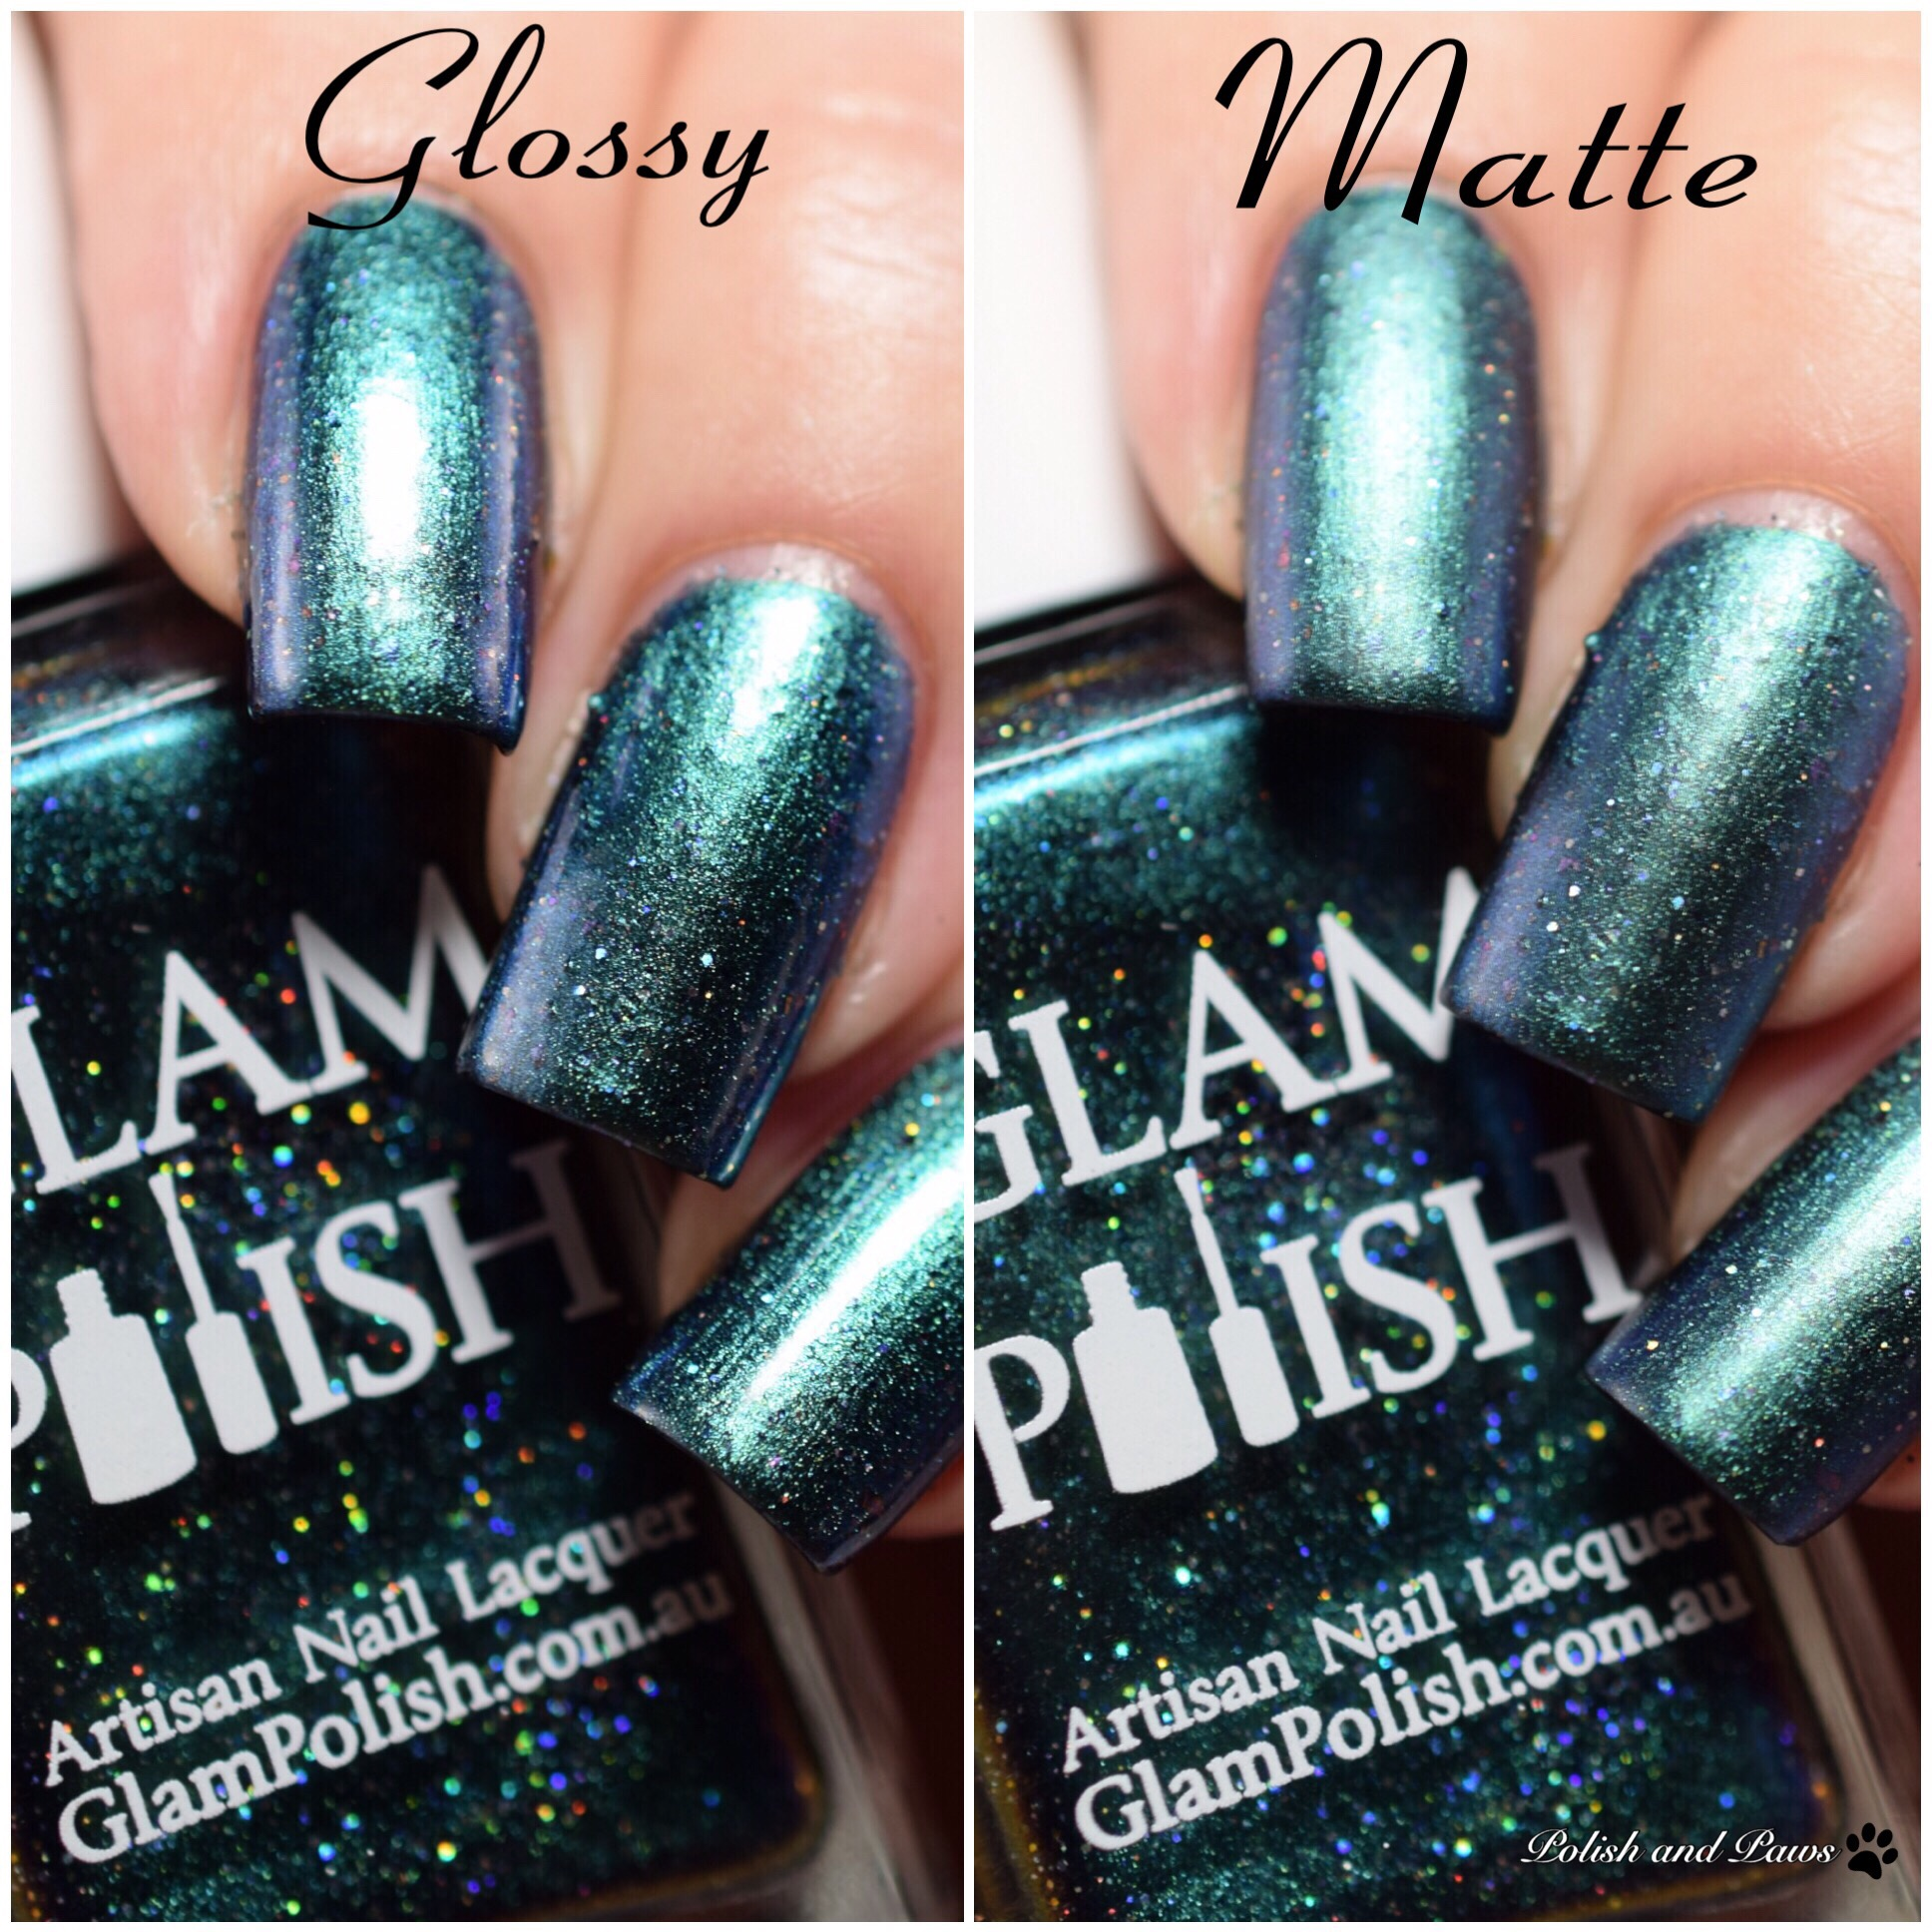 Glam Polish The Mountain and the Viper